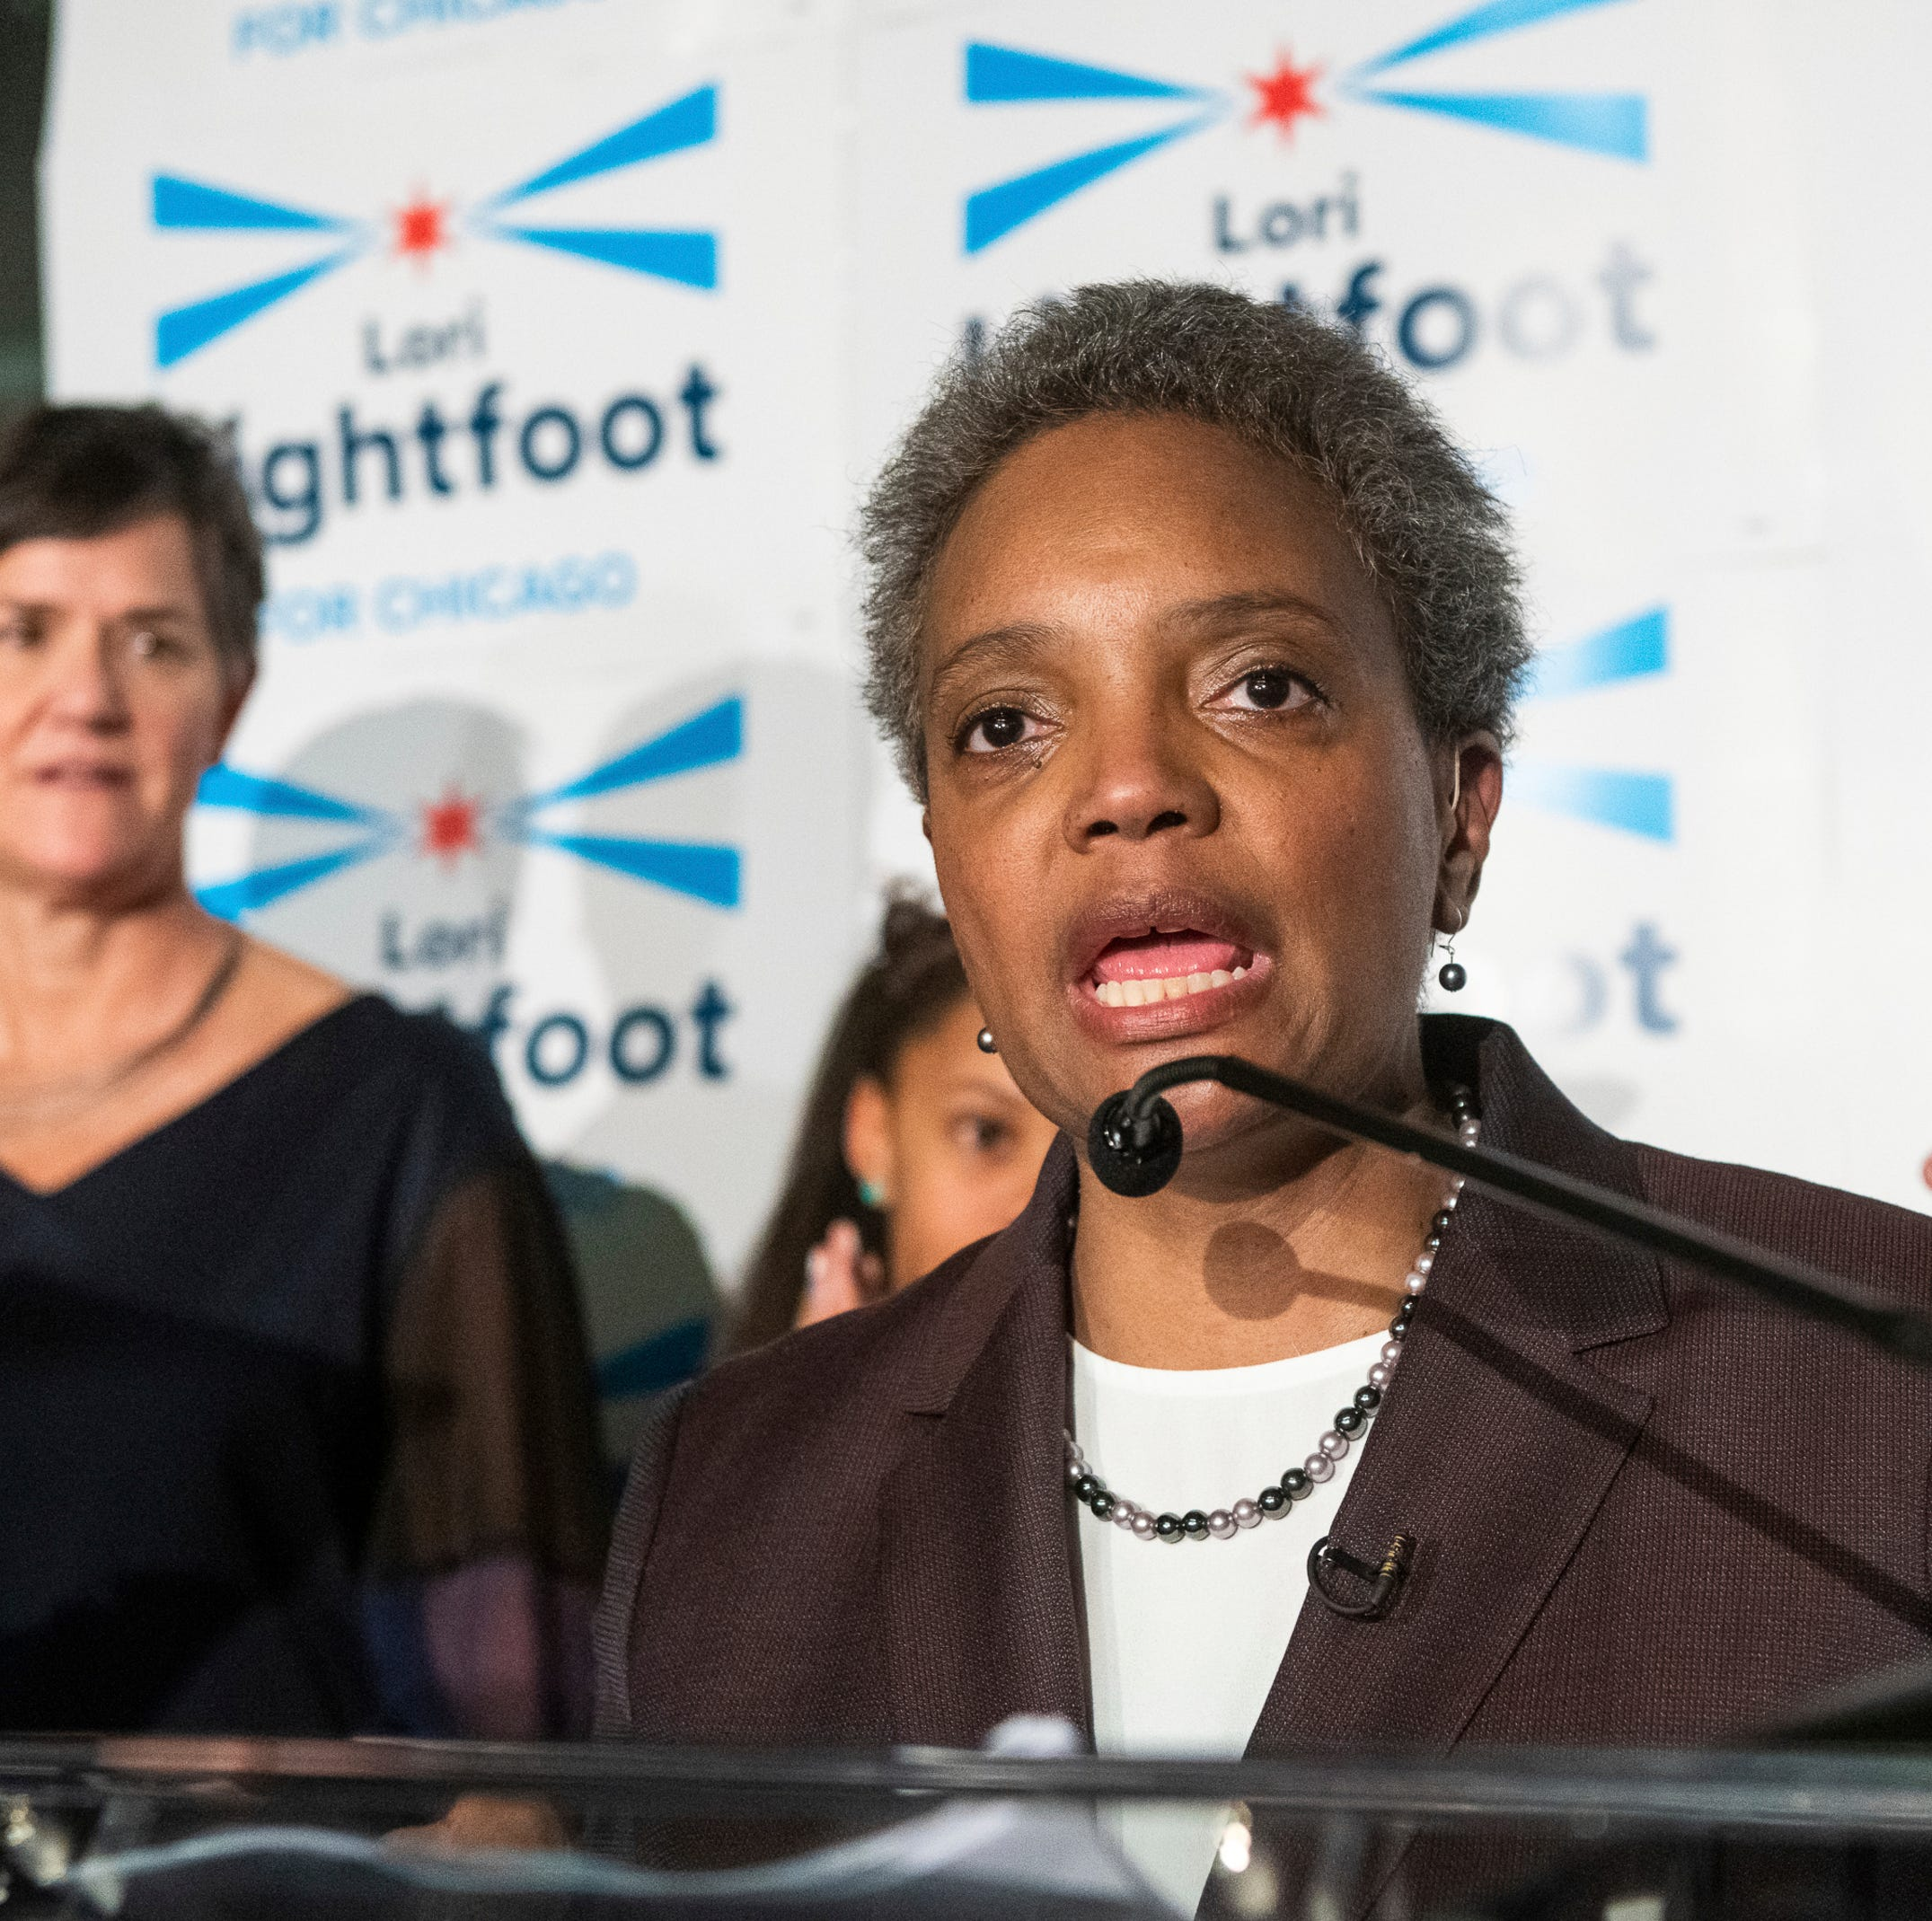 As Chicago readies to elect first black female mayor, campaign rhetoric gets ugly